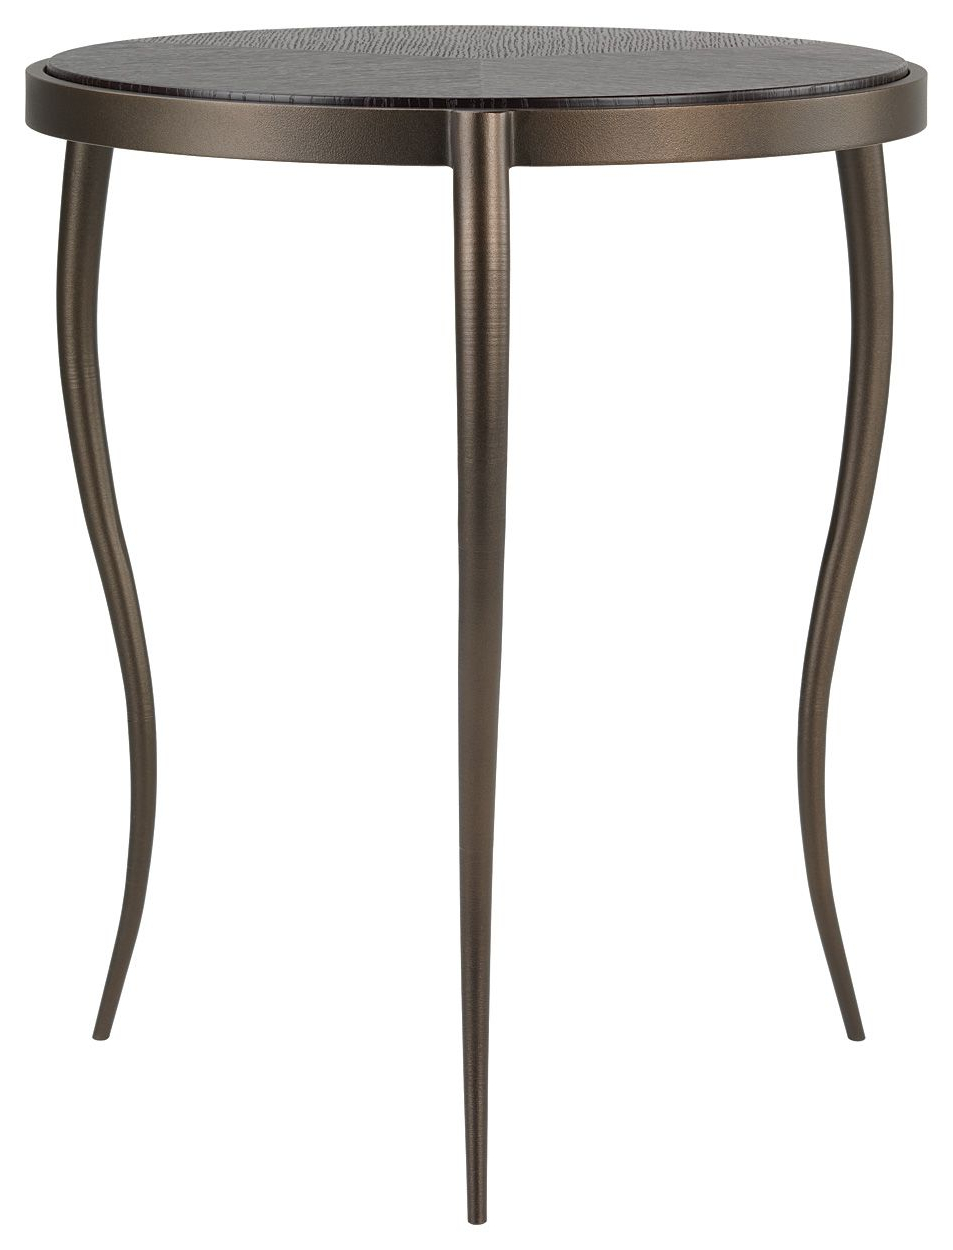 Smoked Oak Side Tables For Most Recent Brinkley Side Table In Textured Bronze With A Dark Smoked Oak Top (View 7 of 20)